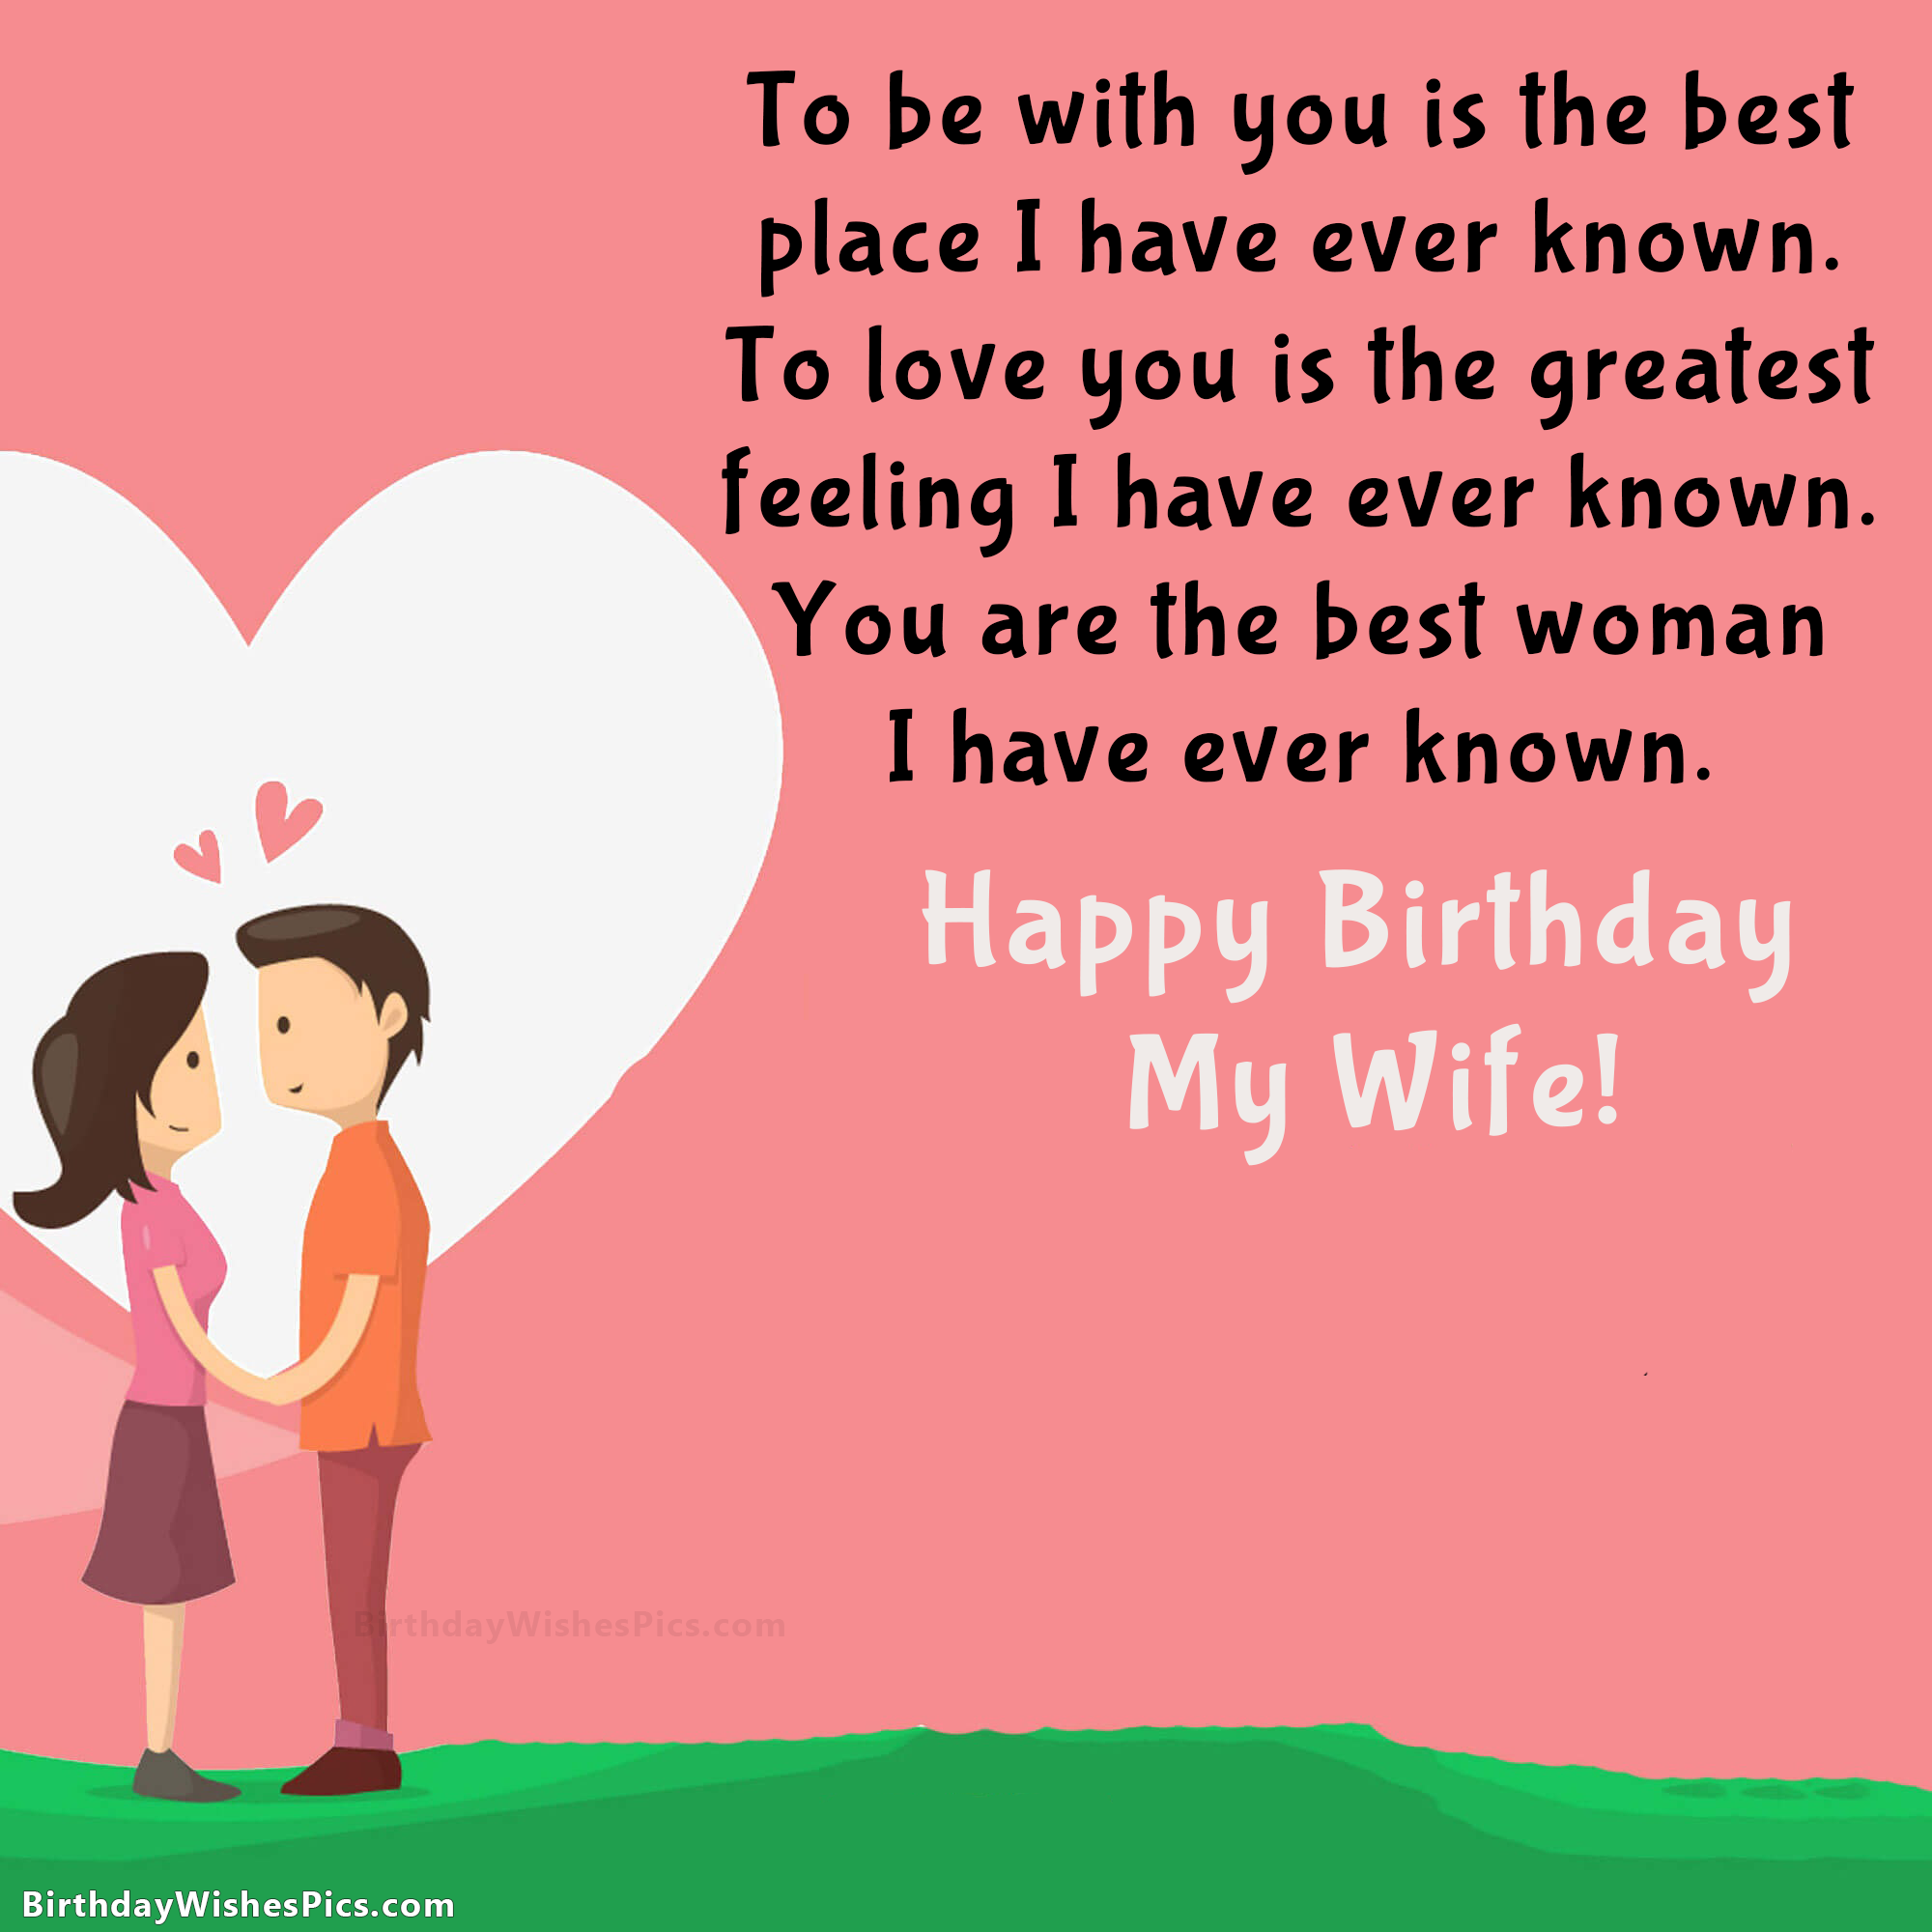 Happy Birthday Wishes For Wife With Romantic Images Birthday Wishes For Wife Best Birthday Wishes Birthday Wish For Husband